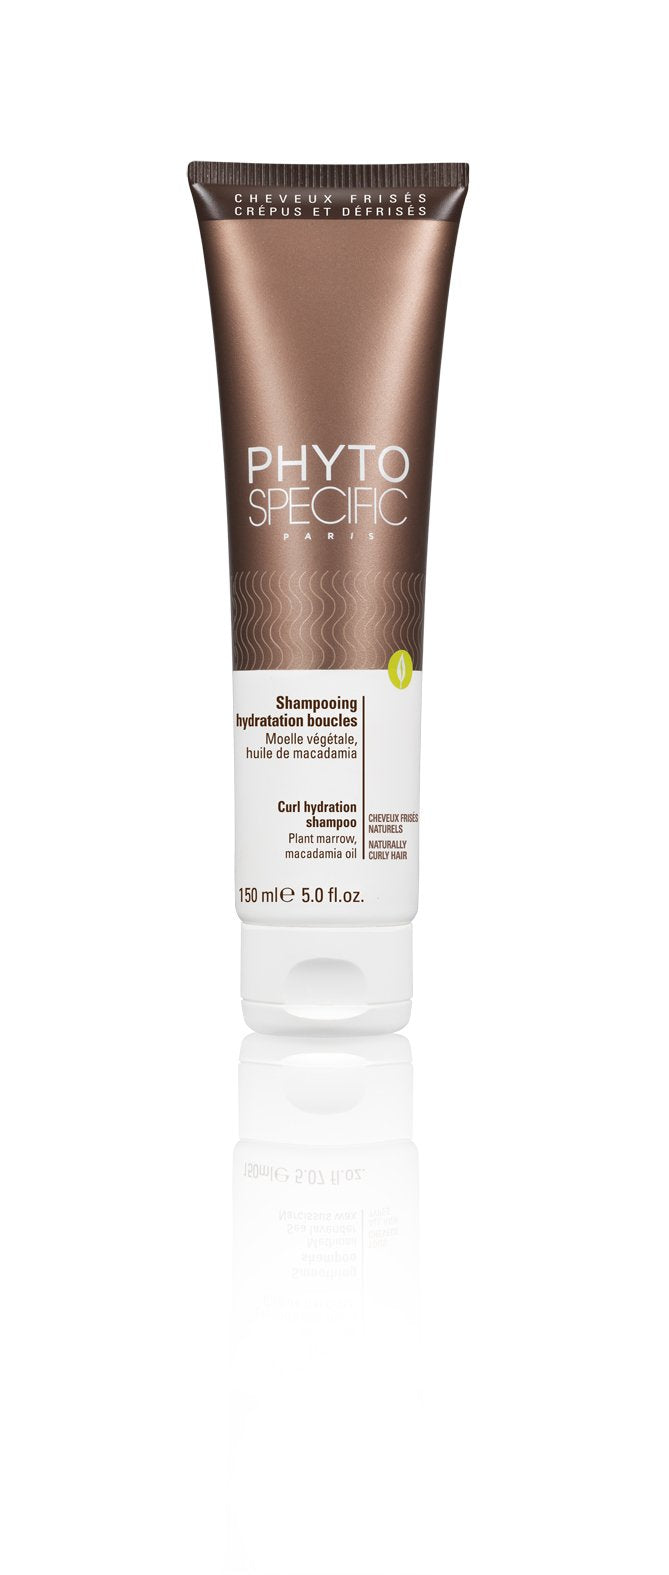 Phyto Specific Curl Hydration Shampoo for Bouncy Curls - 150ml